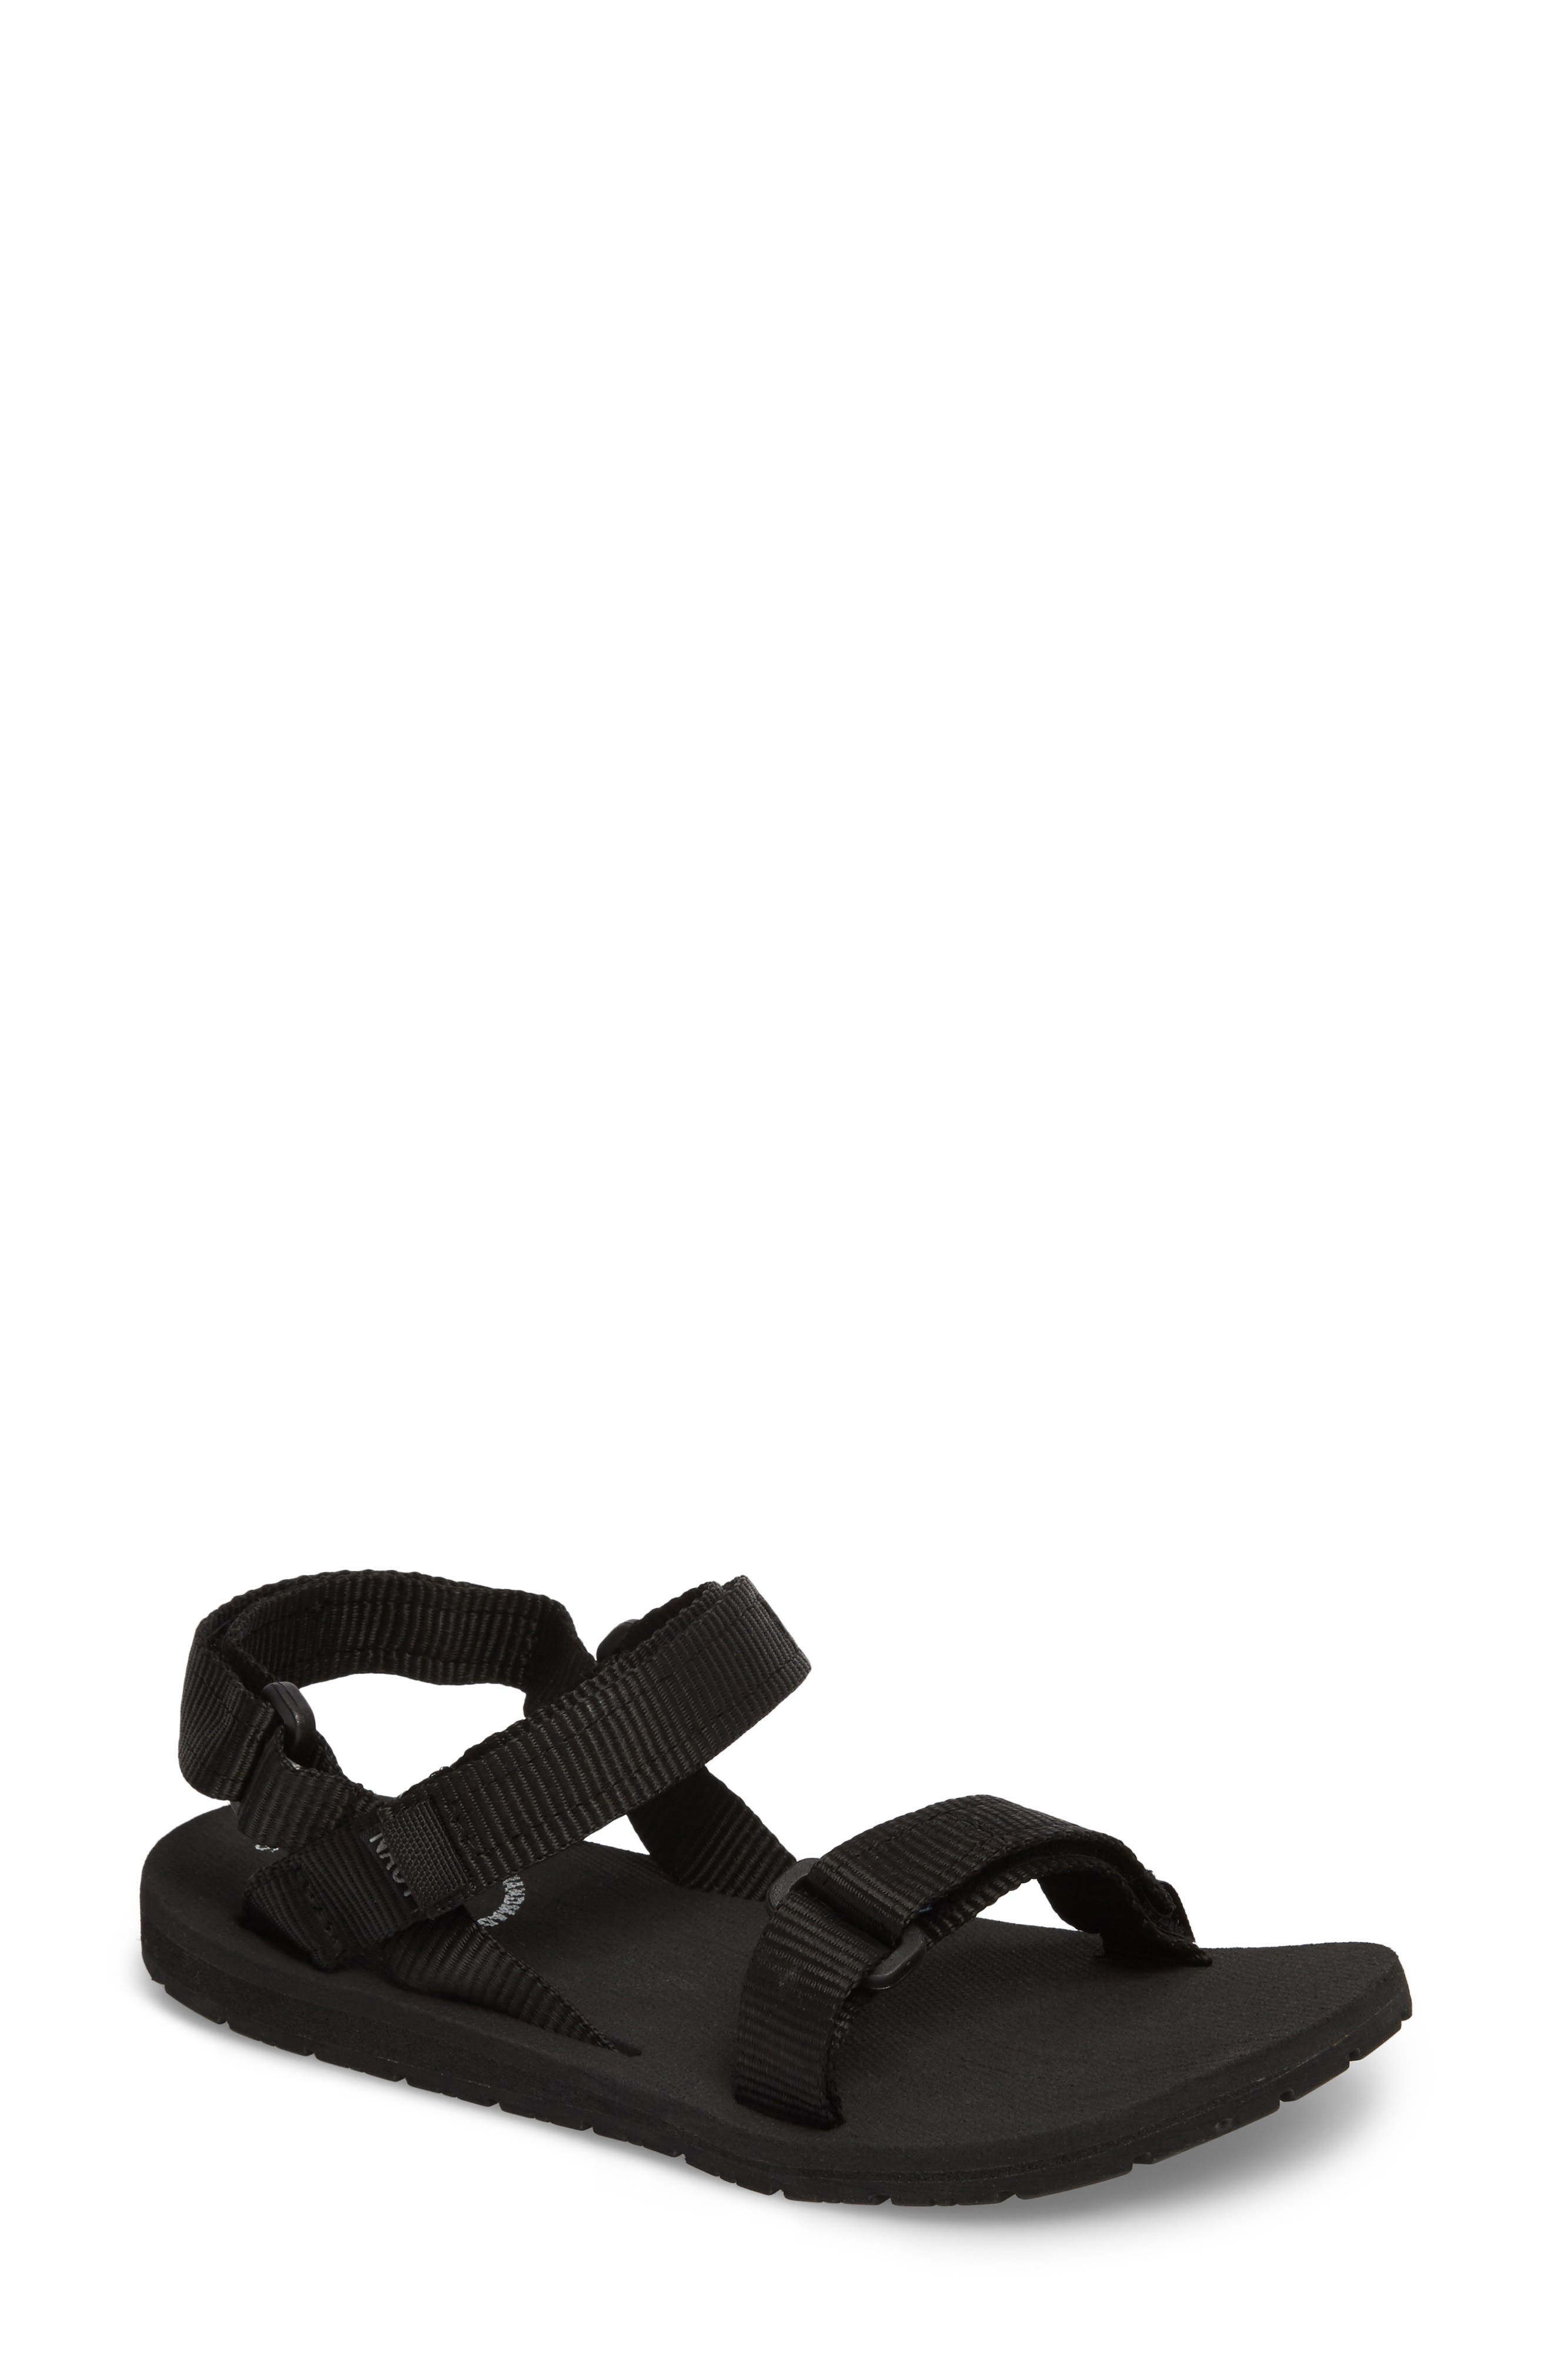 Haven Waterproof Sandal,                         Main,                         color, BLACK FABRIC